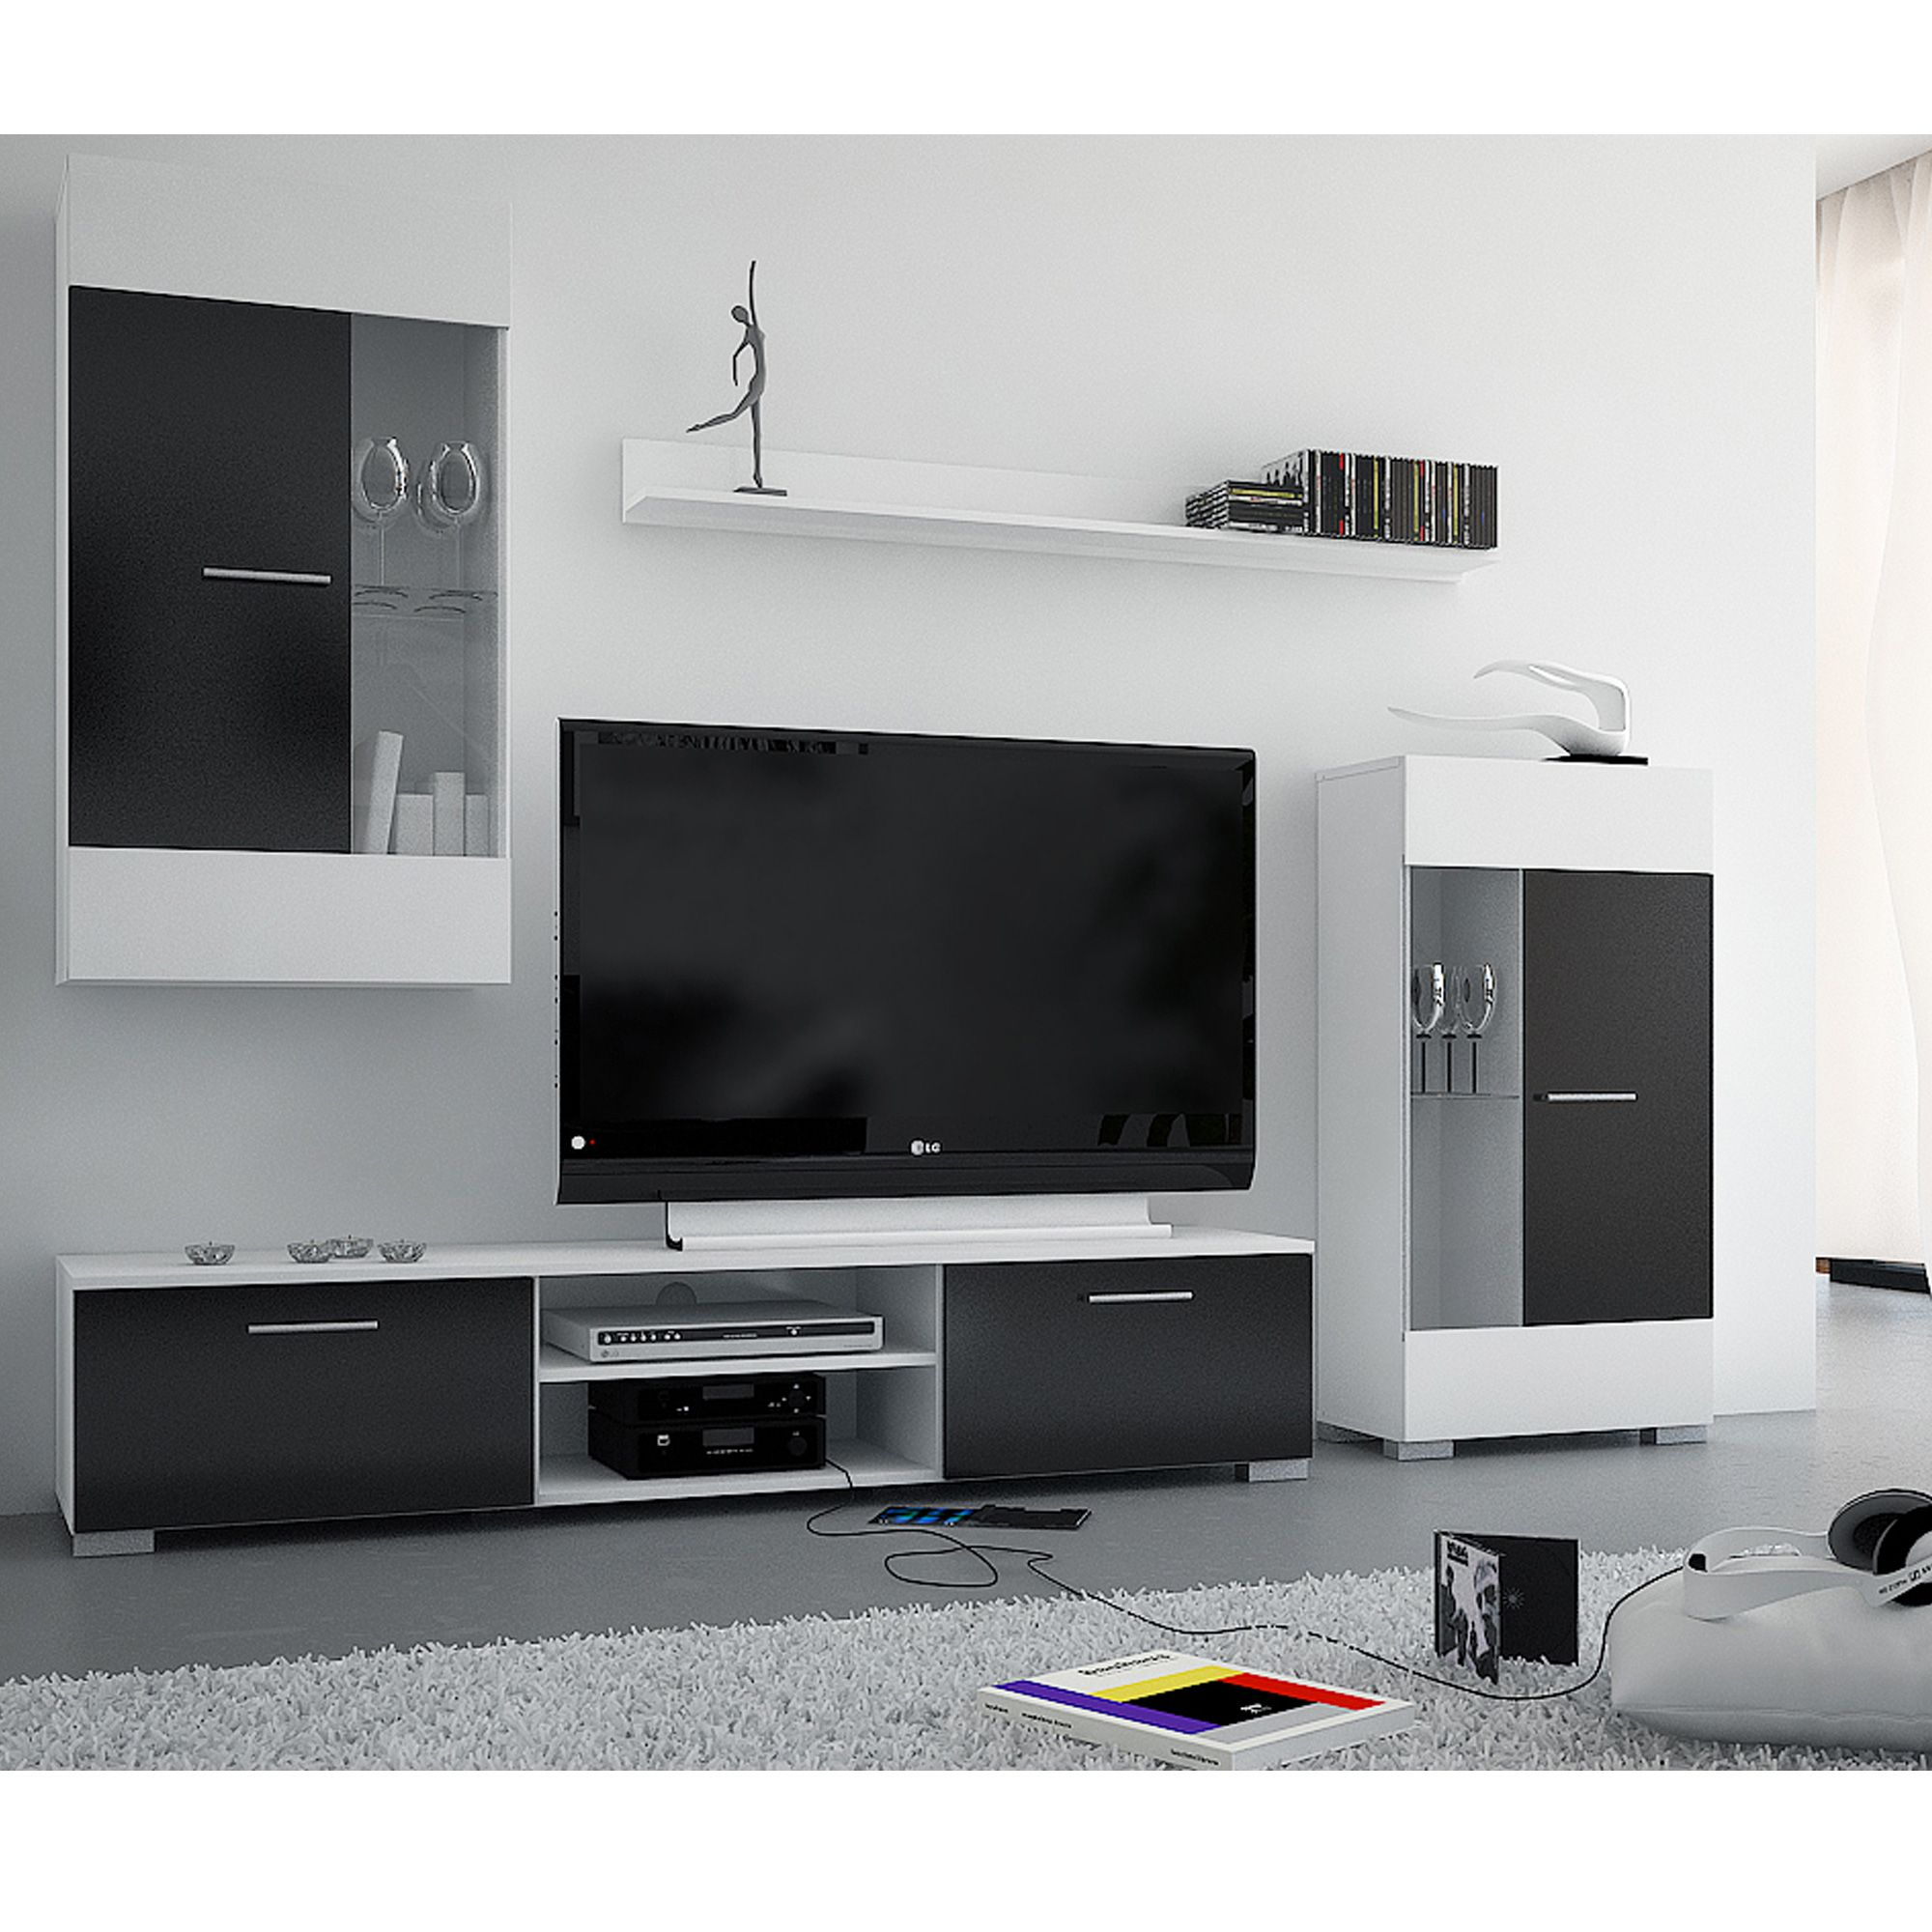 meuble tv la maison de valerie ensemble meuble tv bravo ventes pas la maison de. Black Bedroom Furniture Sets. Home Design Ideas